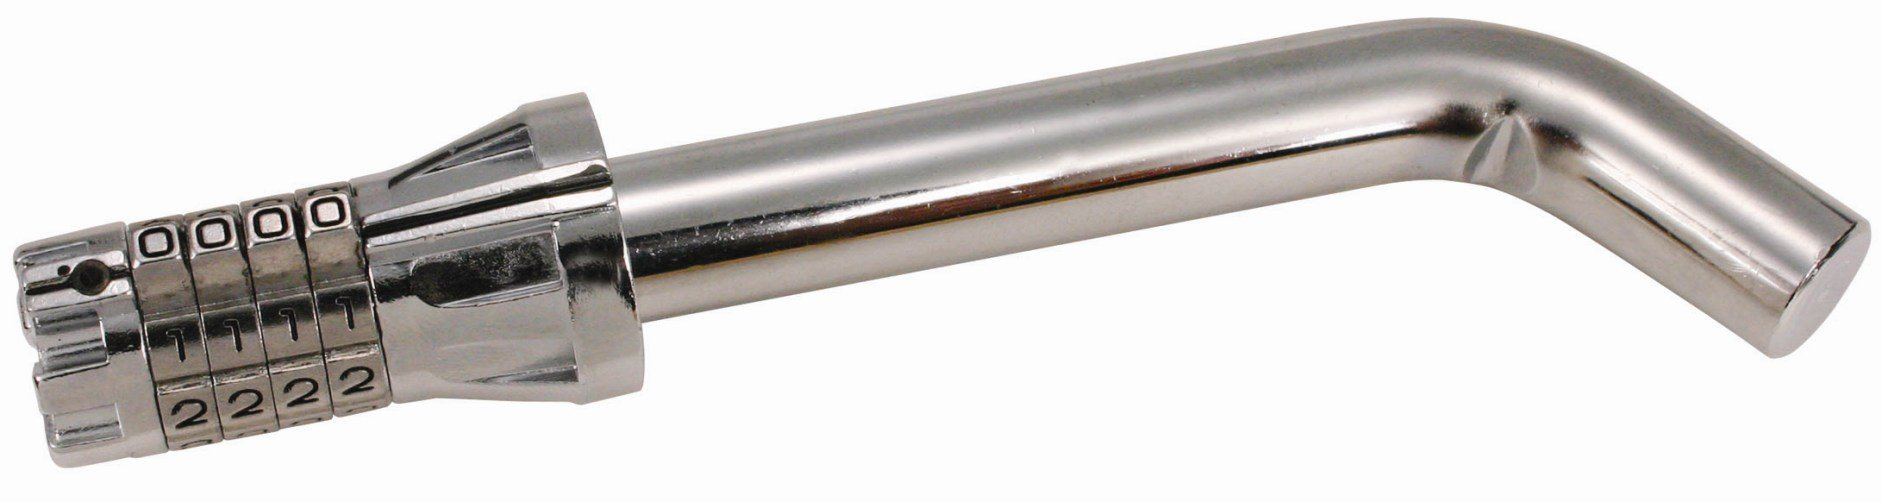 Trimax MAG200 Resettable Combination Bent Pin 5/8'' Receiver Lock by Trimax